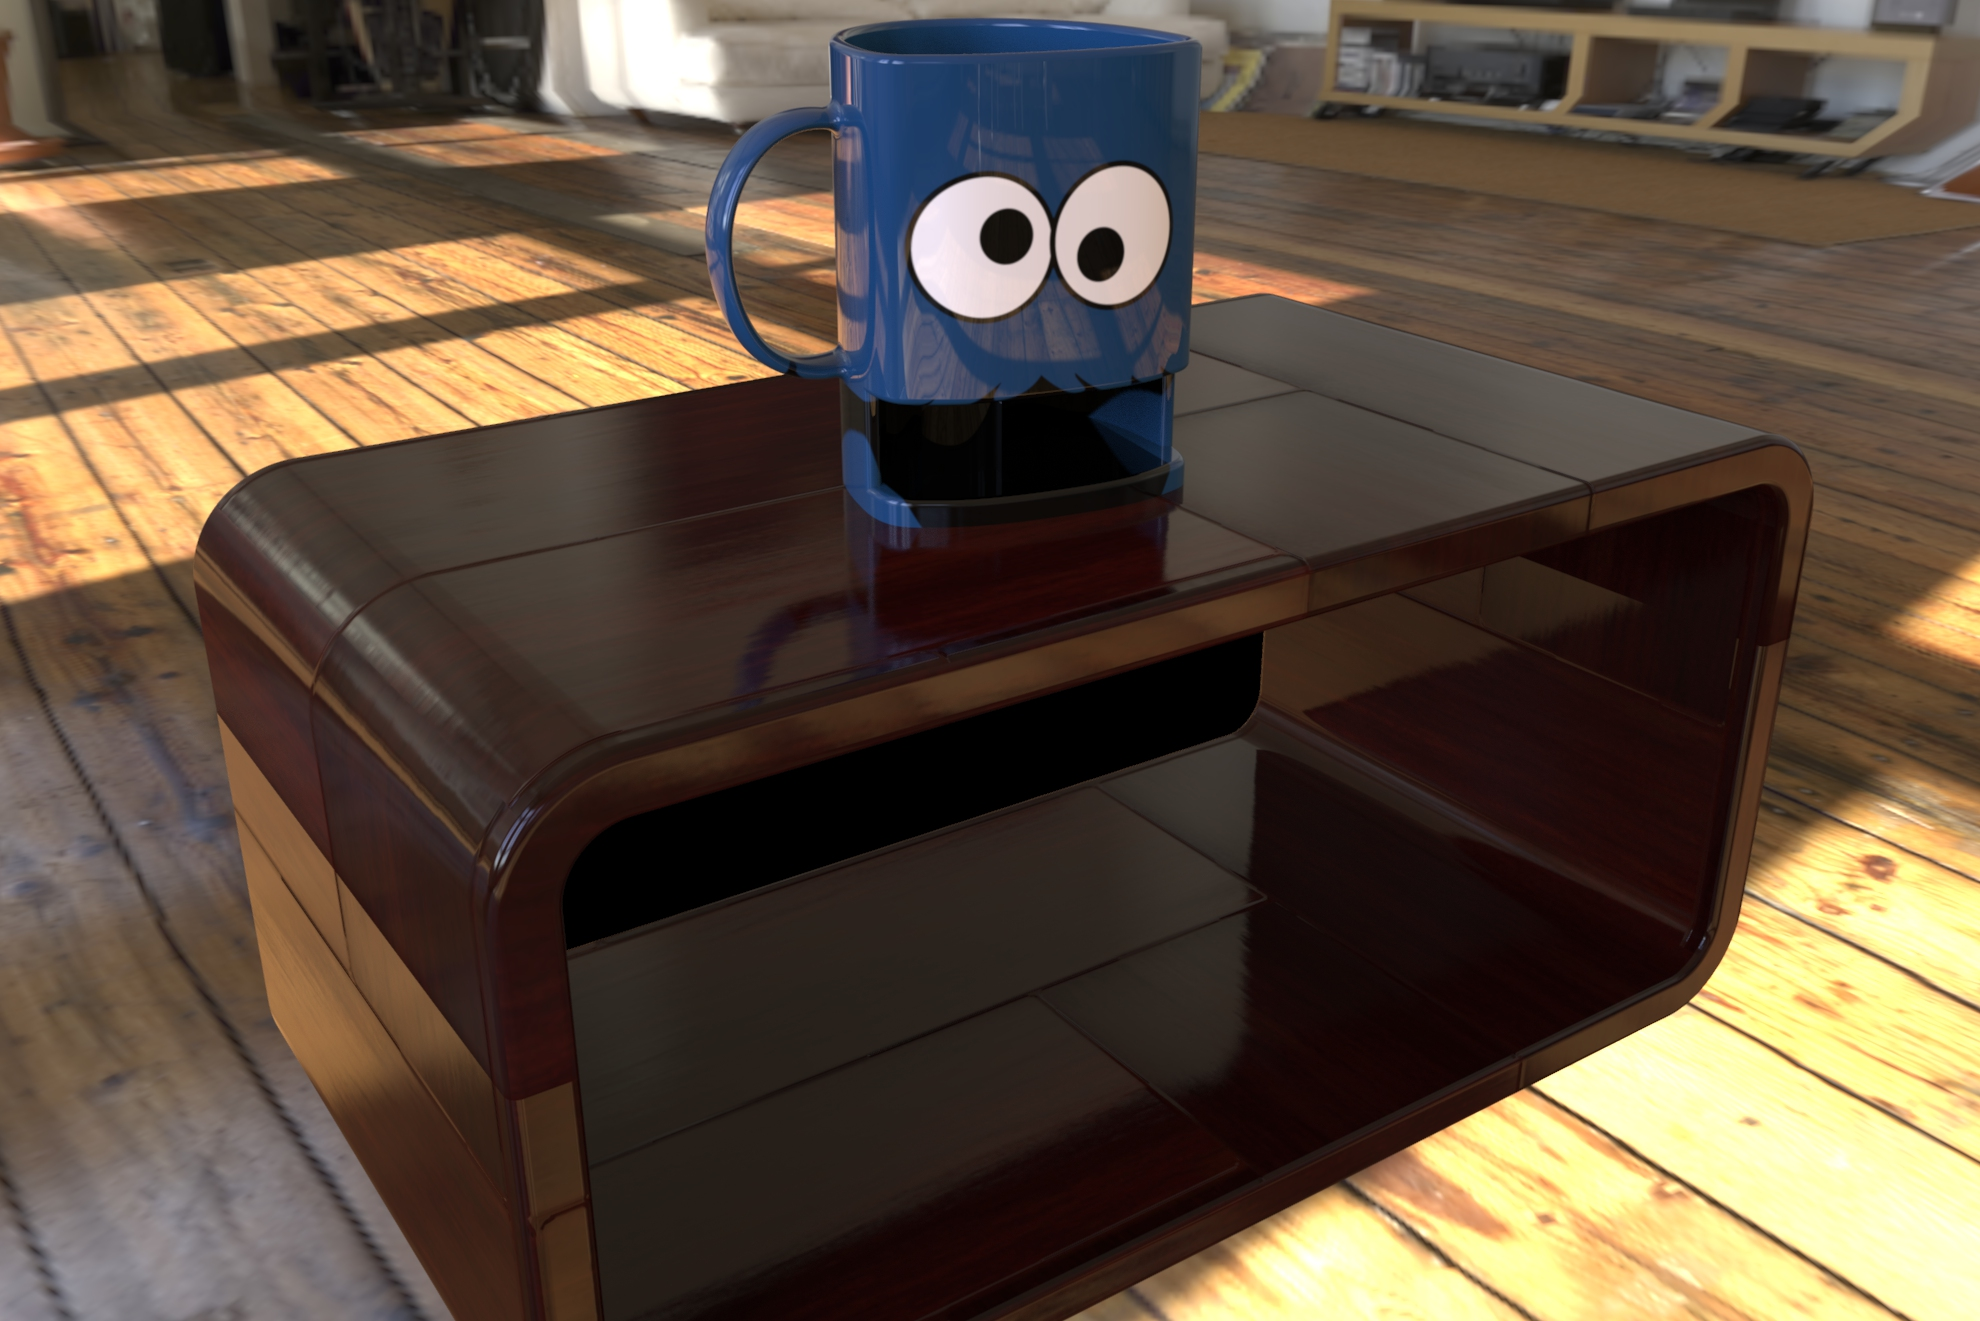 cookie mug 3d model ige igs iges sldprt  obj 282060